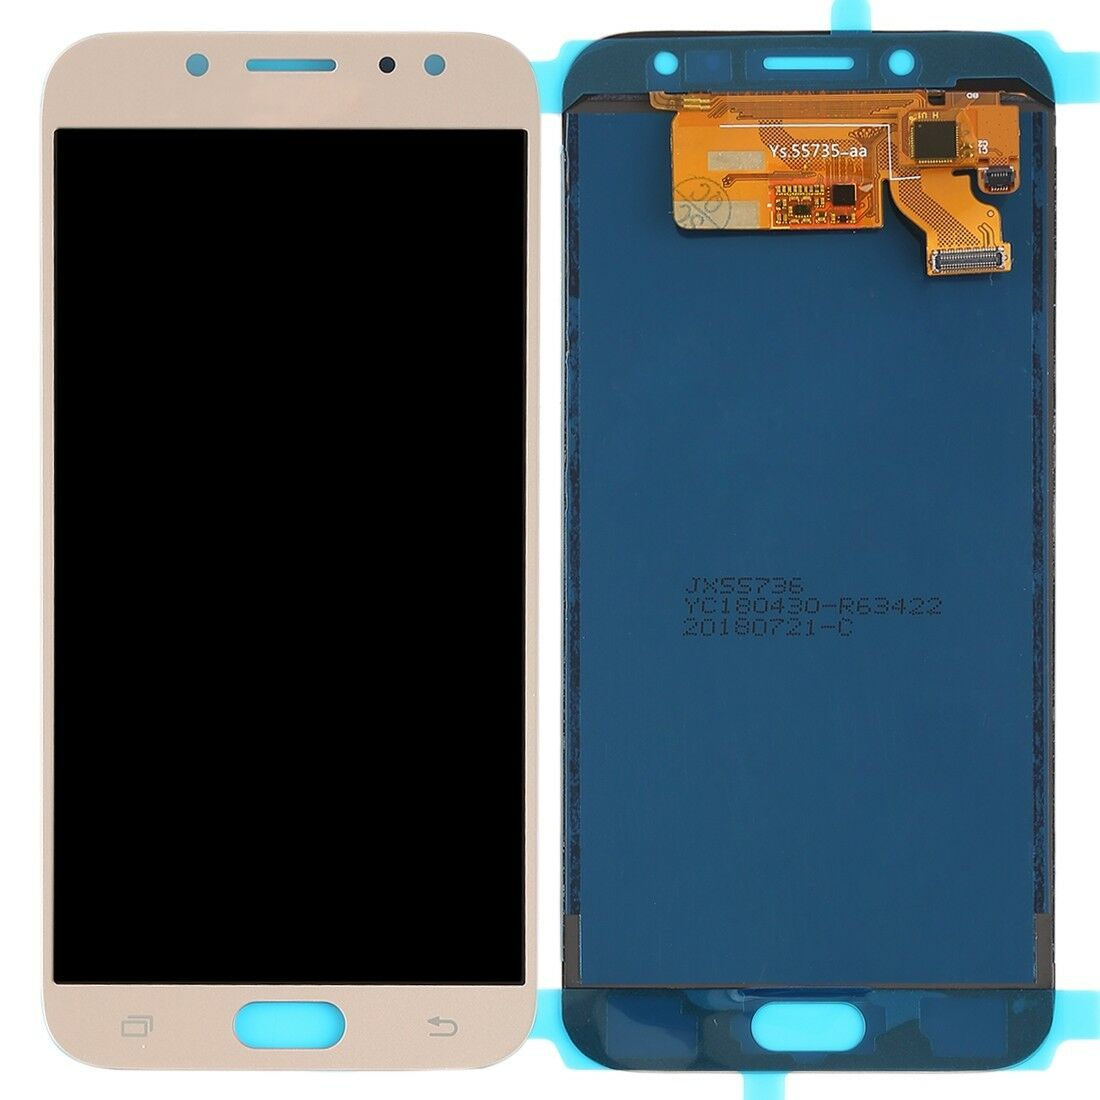 TOUCH SCREEN LCD DISPLAY GOLD ORO Samsung Galaxy J7 2017 J730 SM-J730F SM-J730F/DS+ kit 9 in 1 biadesivo e colla b7000